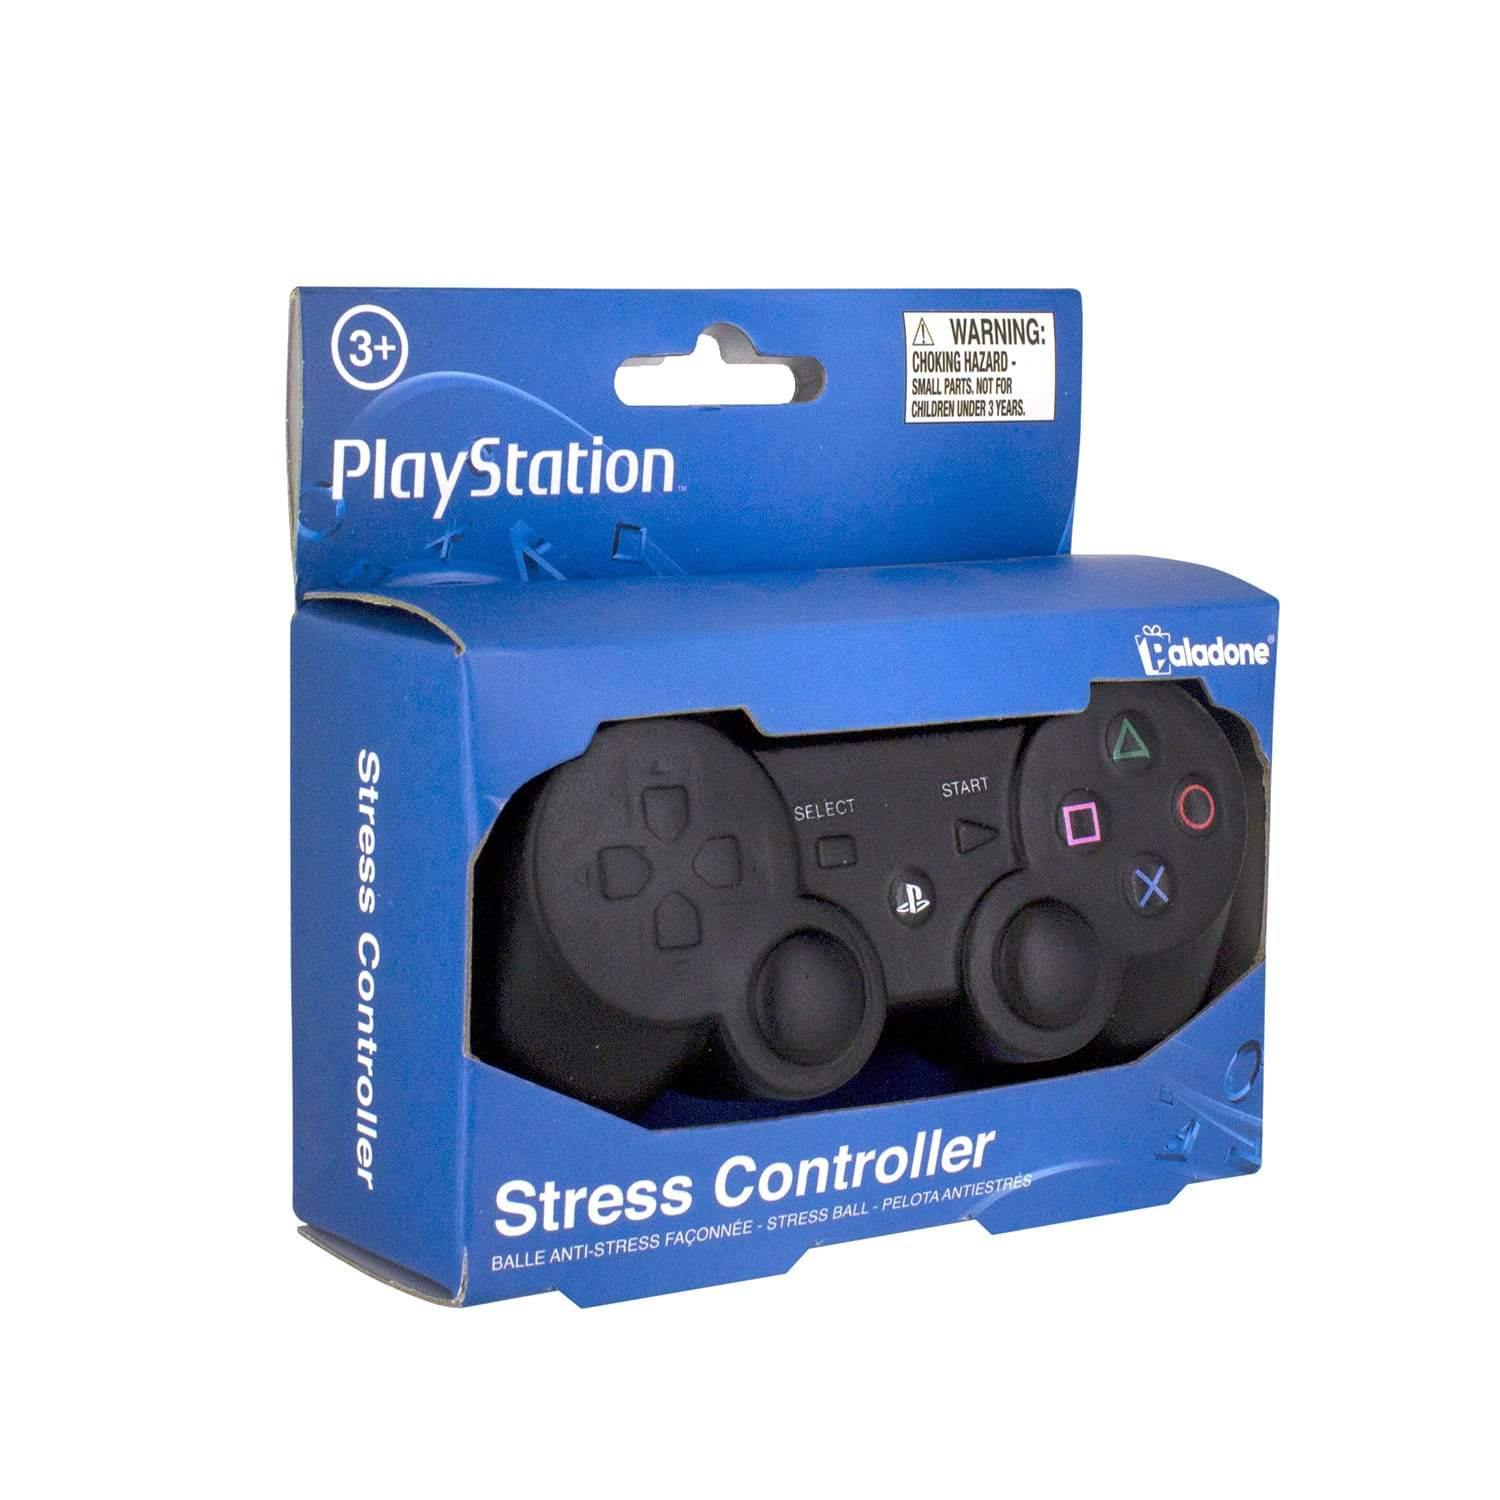 PlayStation Stress Controller-3